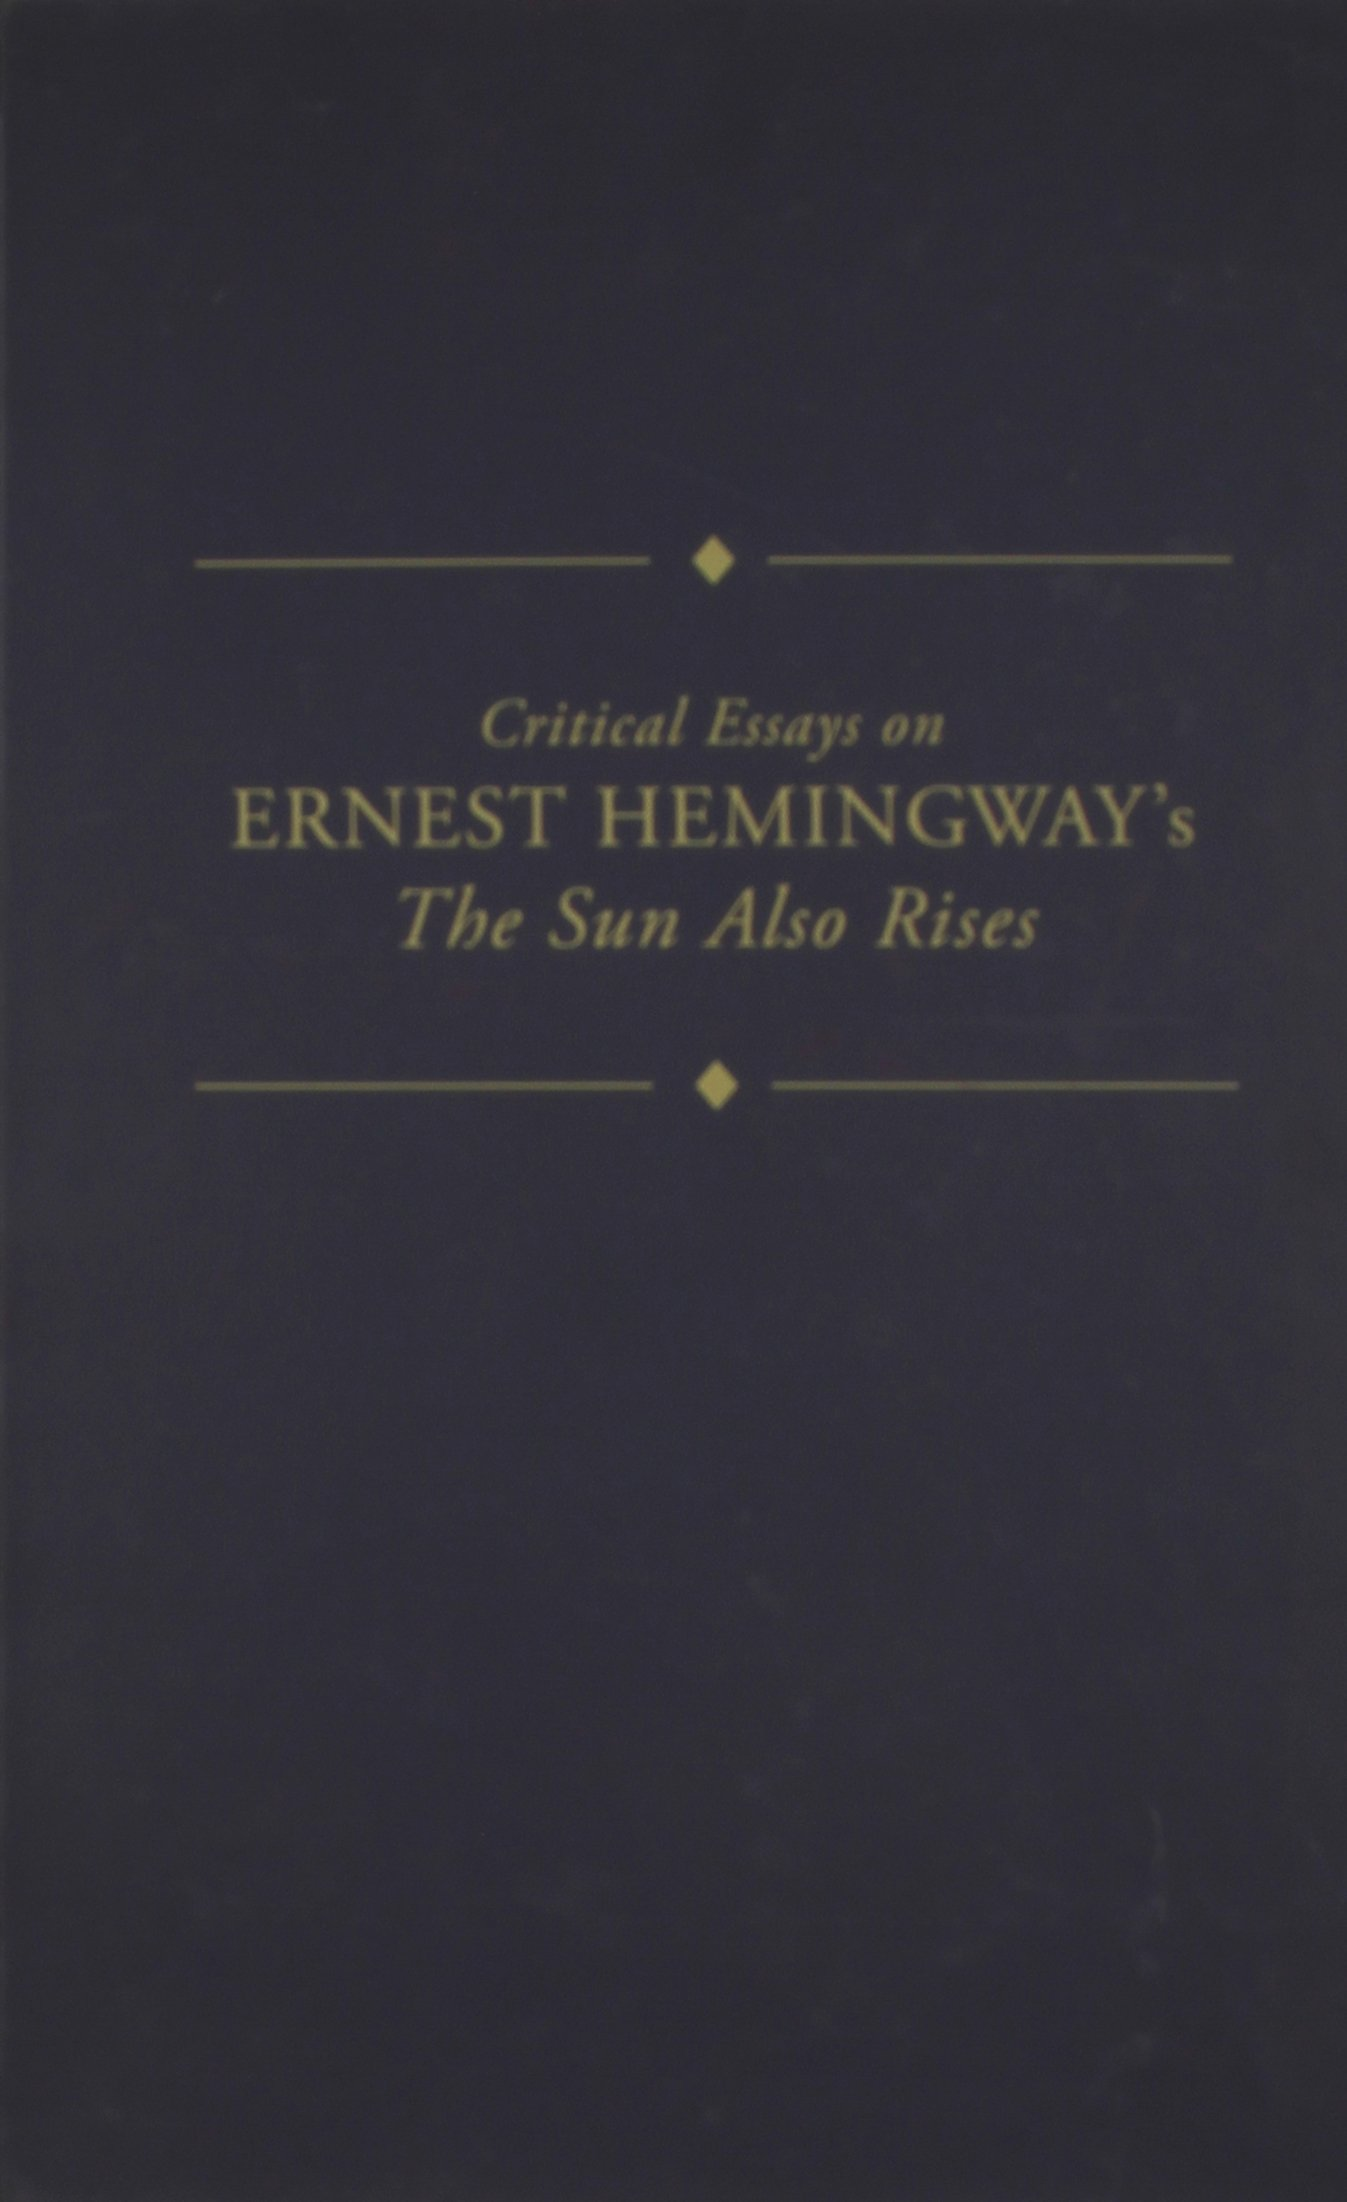 com critical essays on ernest hemingway s the sun also  com critical essays on ernest hemingway s the sun also rises critical essays on american literature series 9780816173129 james nagel books